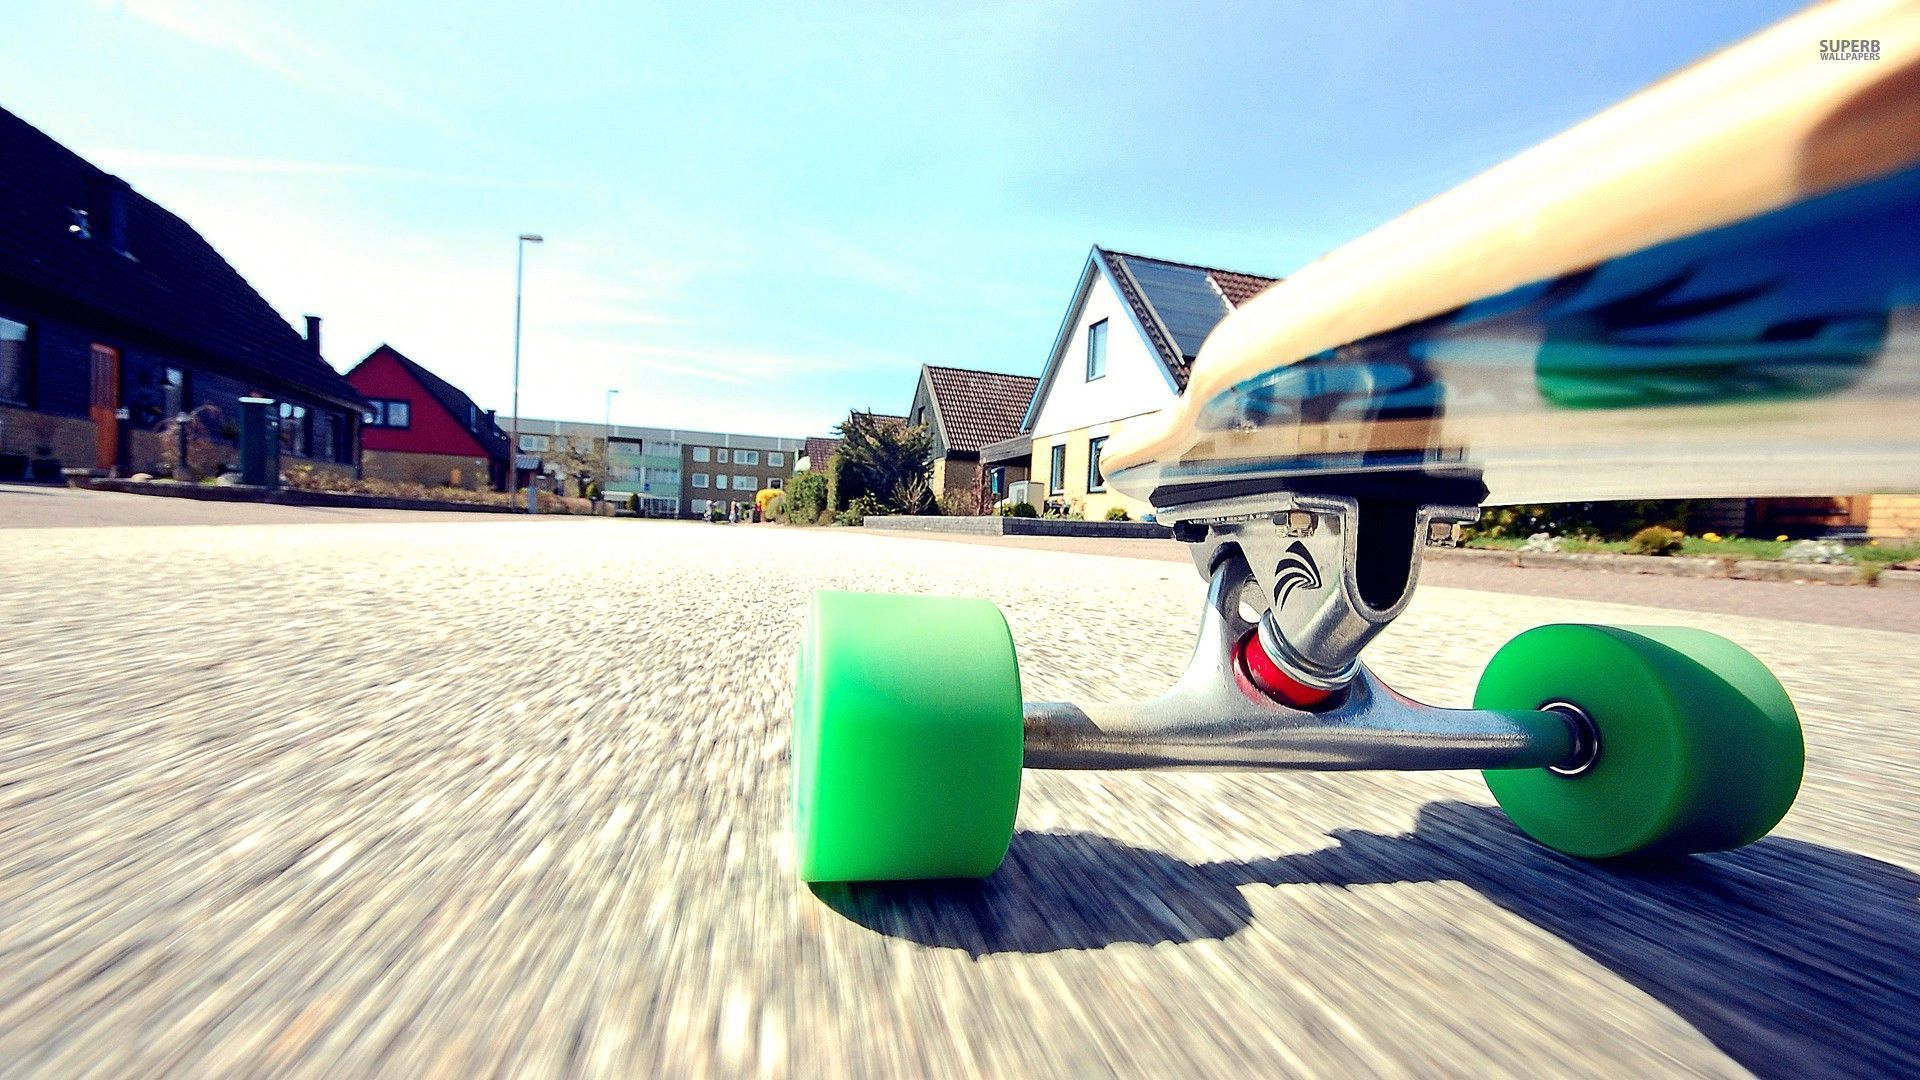 Longboard wallpaper   Photography wallpapers 1920x1080